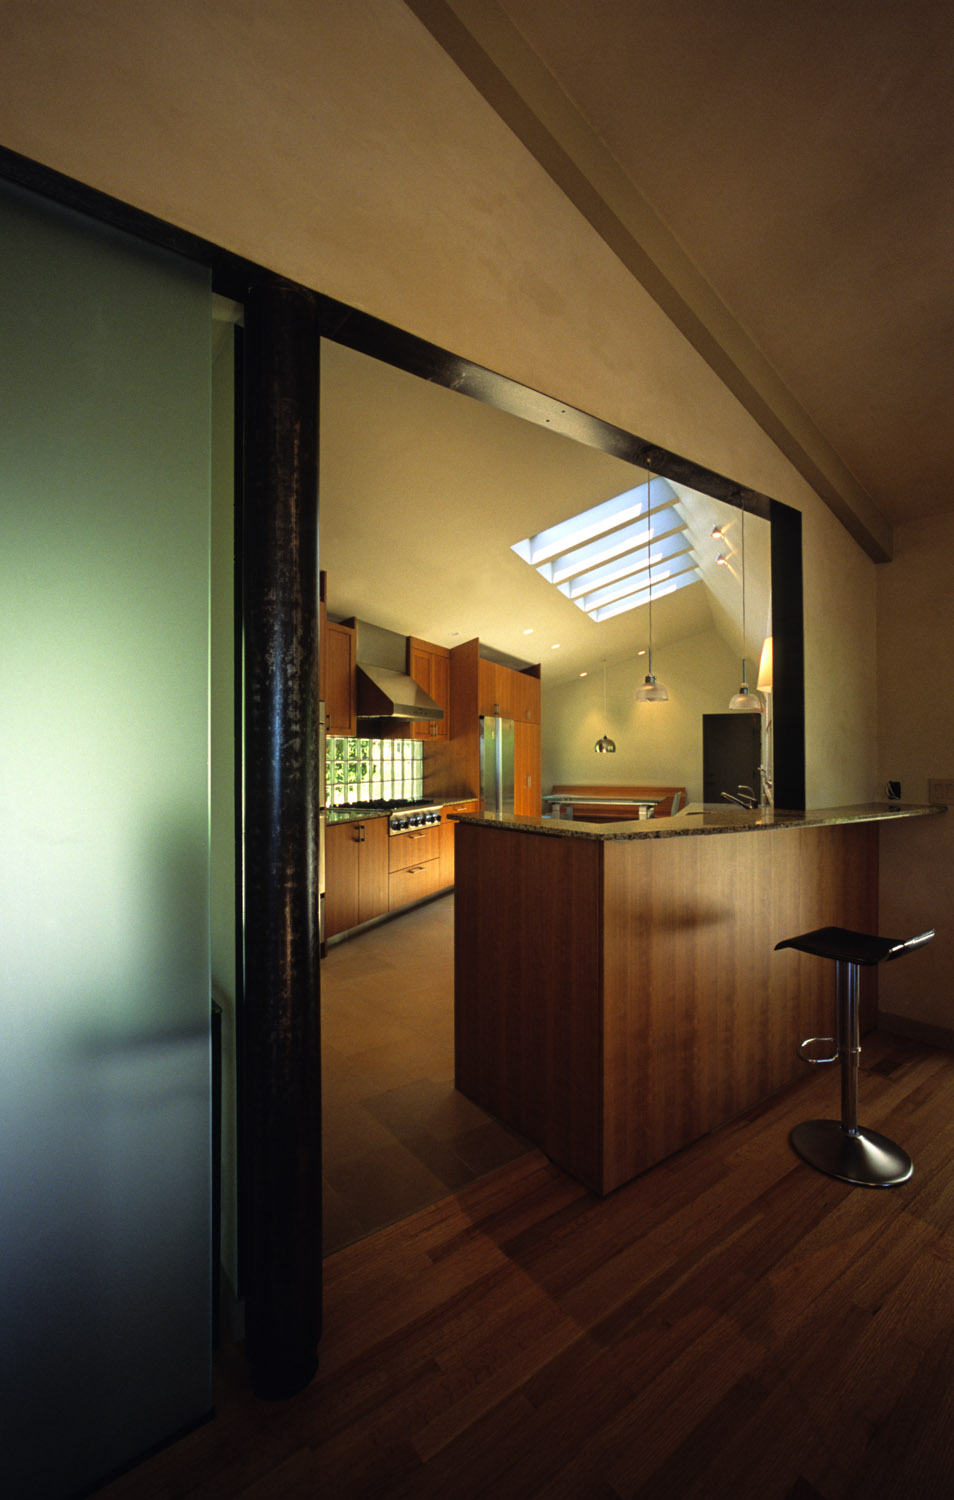 The kitchen opens to the dining room, separted by a peninsula bar.